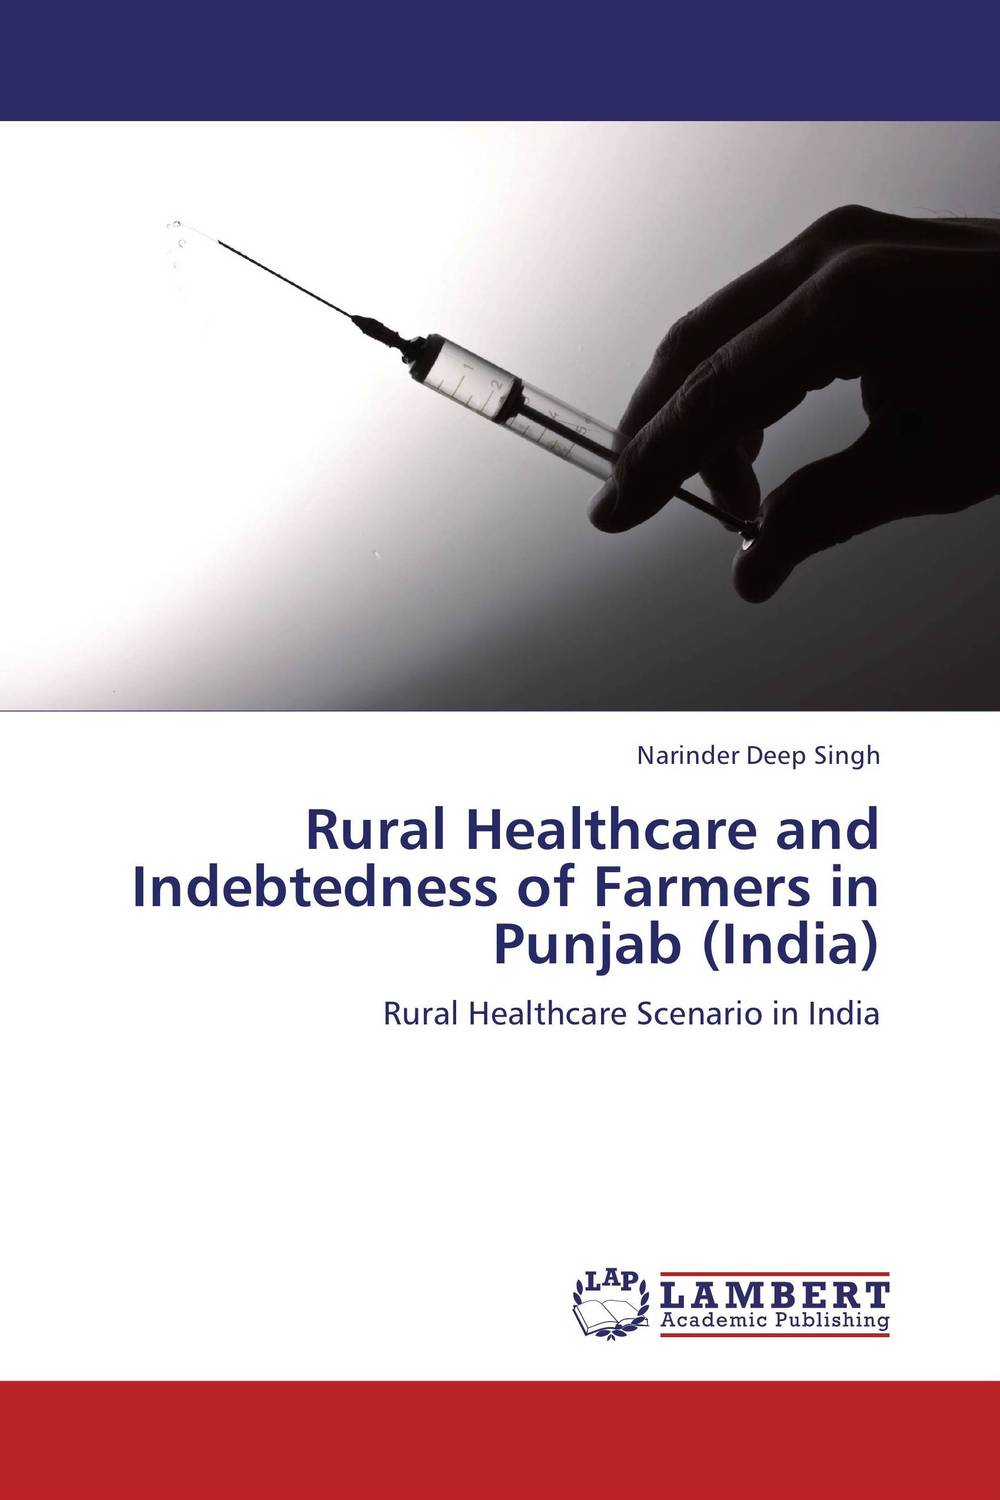 Rural Healthcare and Indebtedness of Farmers in Punjab (India) community resilience of village udekaran punjab india